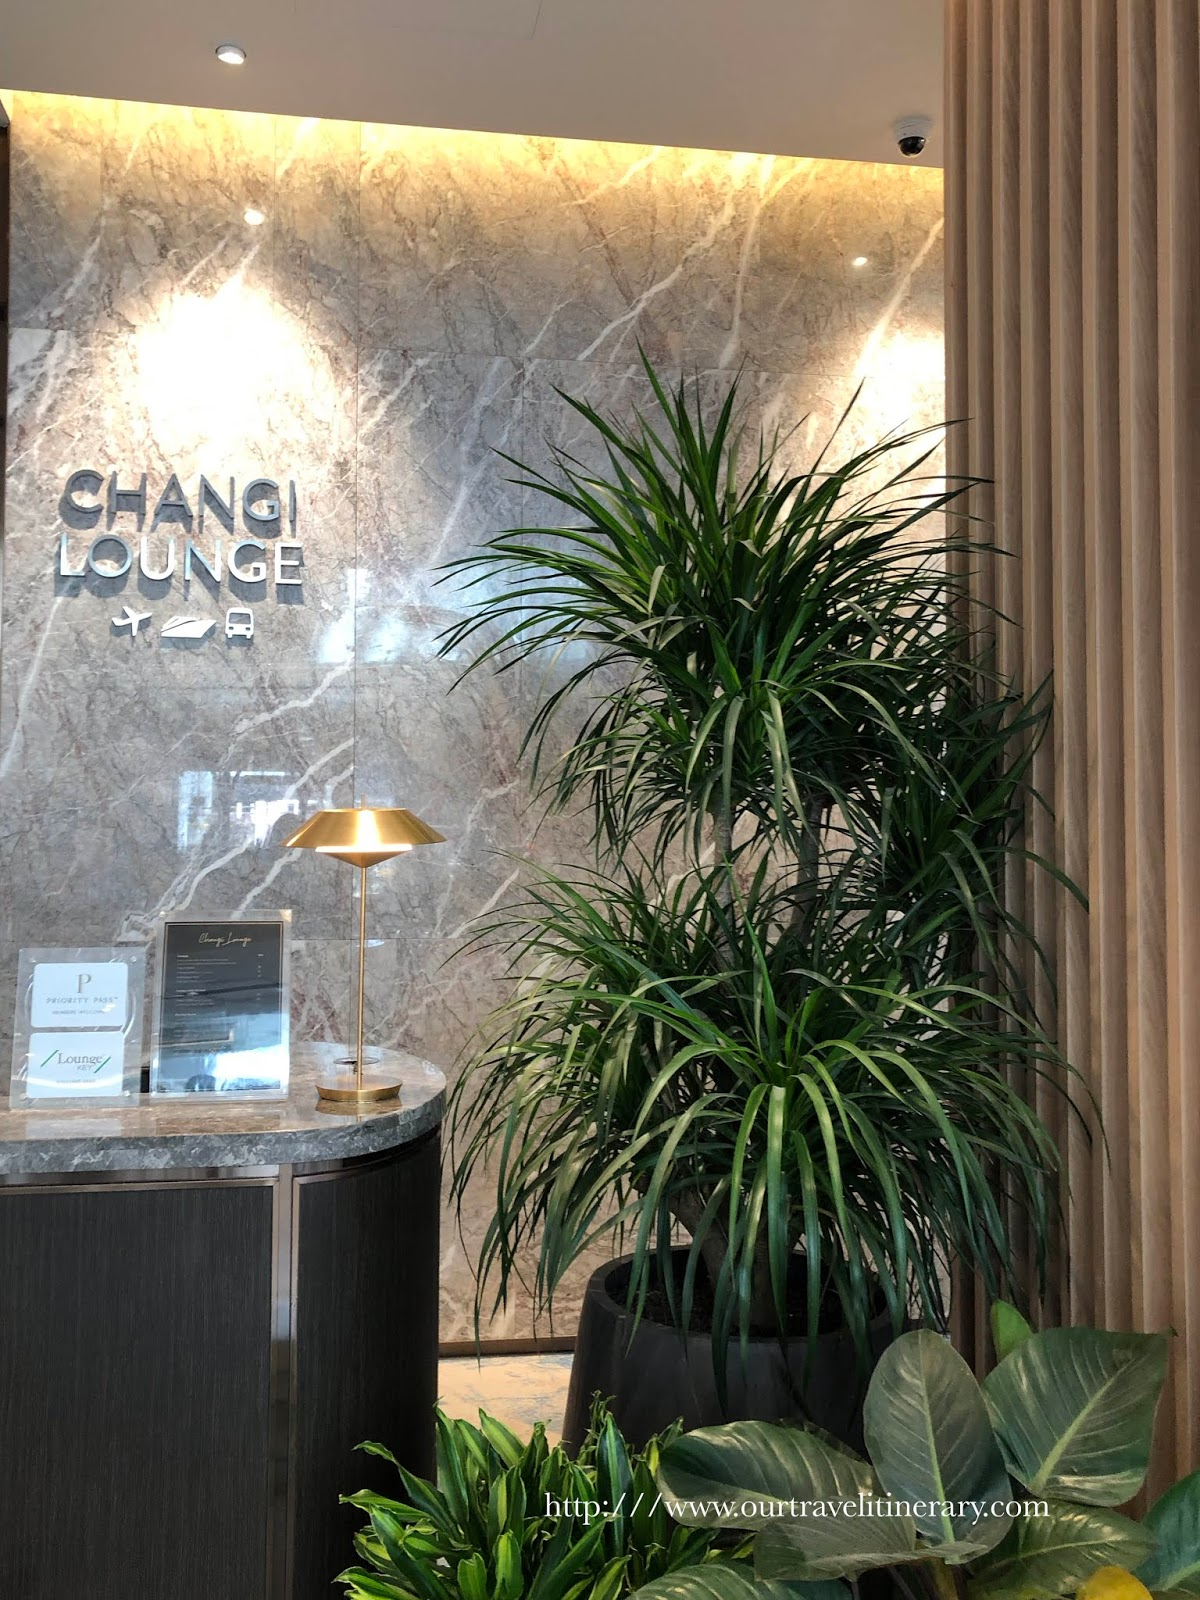 changi airport  lounge review, priority pass member